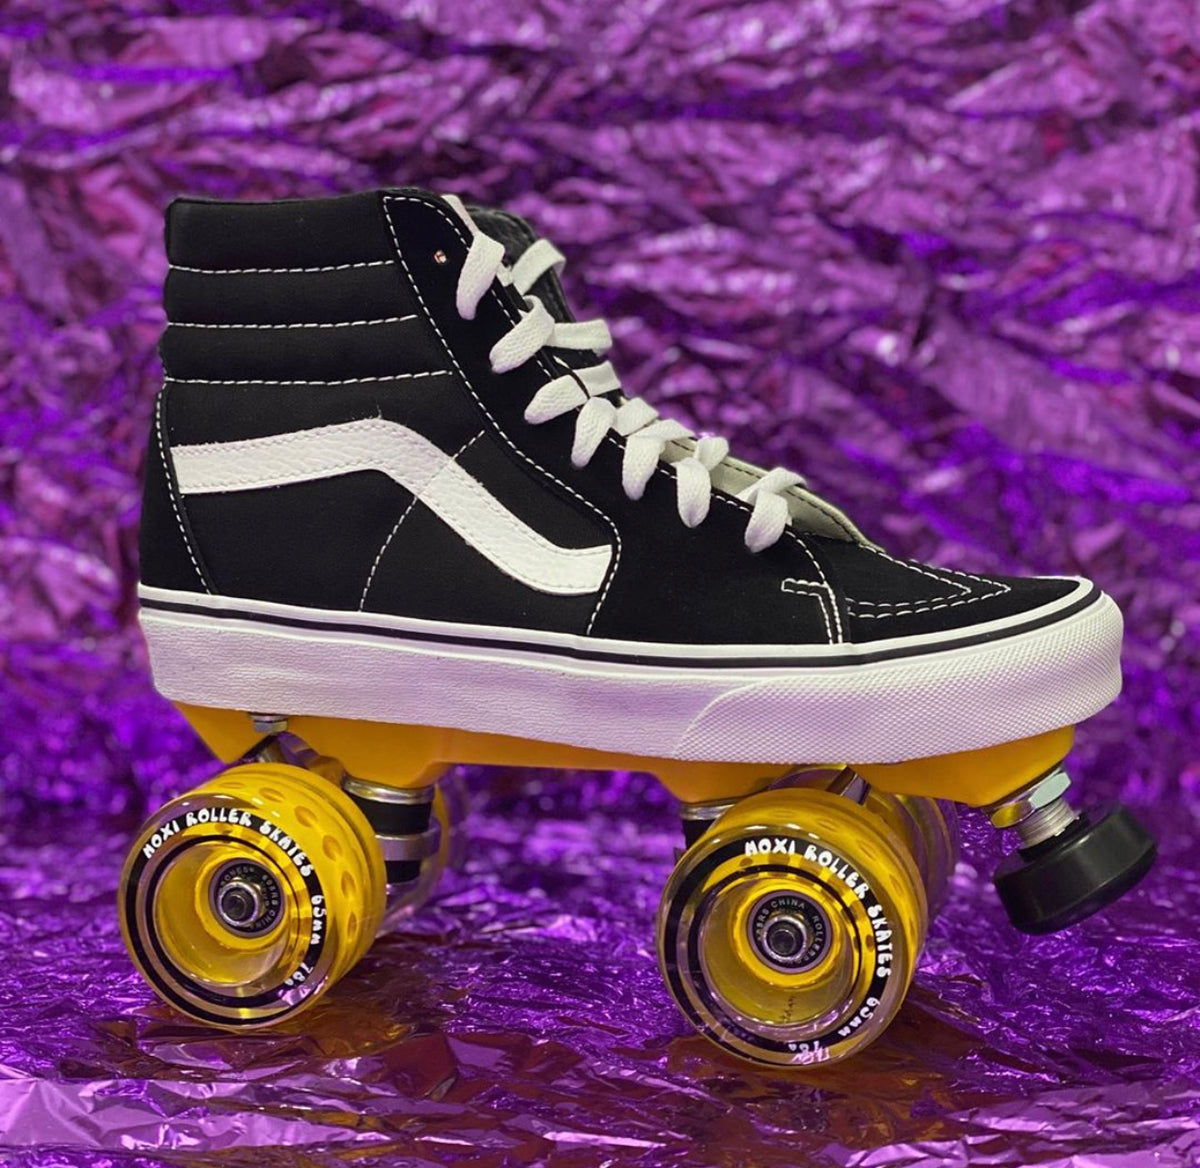 Custom Shoe Skate Build Pigeon S Roller Skate Shop Learn to roller skate with us, explore and shop a wide selection of roller skates, wheels, skate a fantastic skate for new and experienced skaters alike. pigeon s roller skate shop